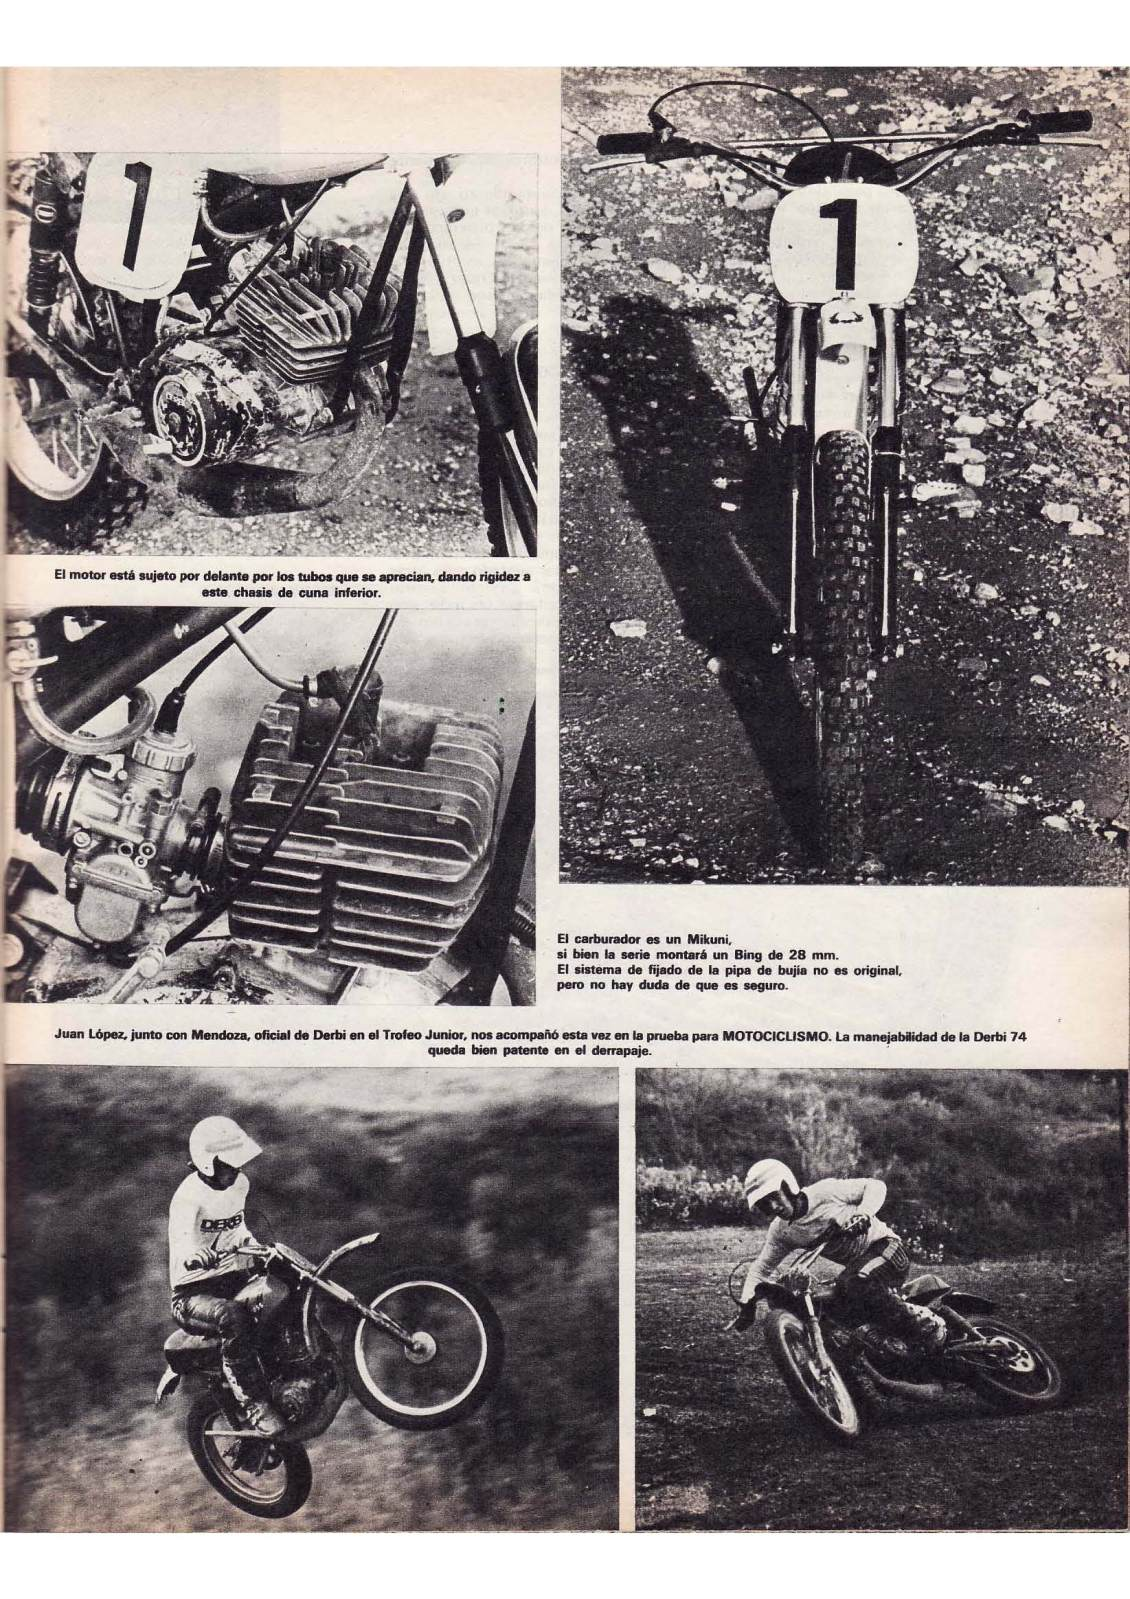 Proyecto Derbi Cross Trofeo Junior 1975/76 2v0k8oy